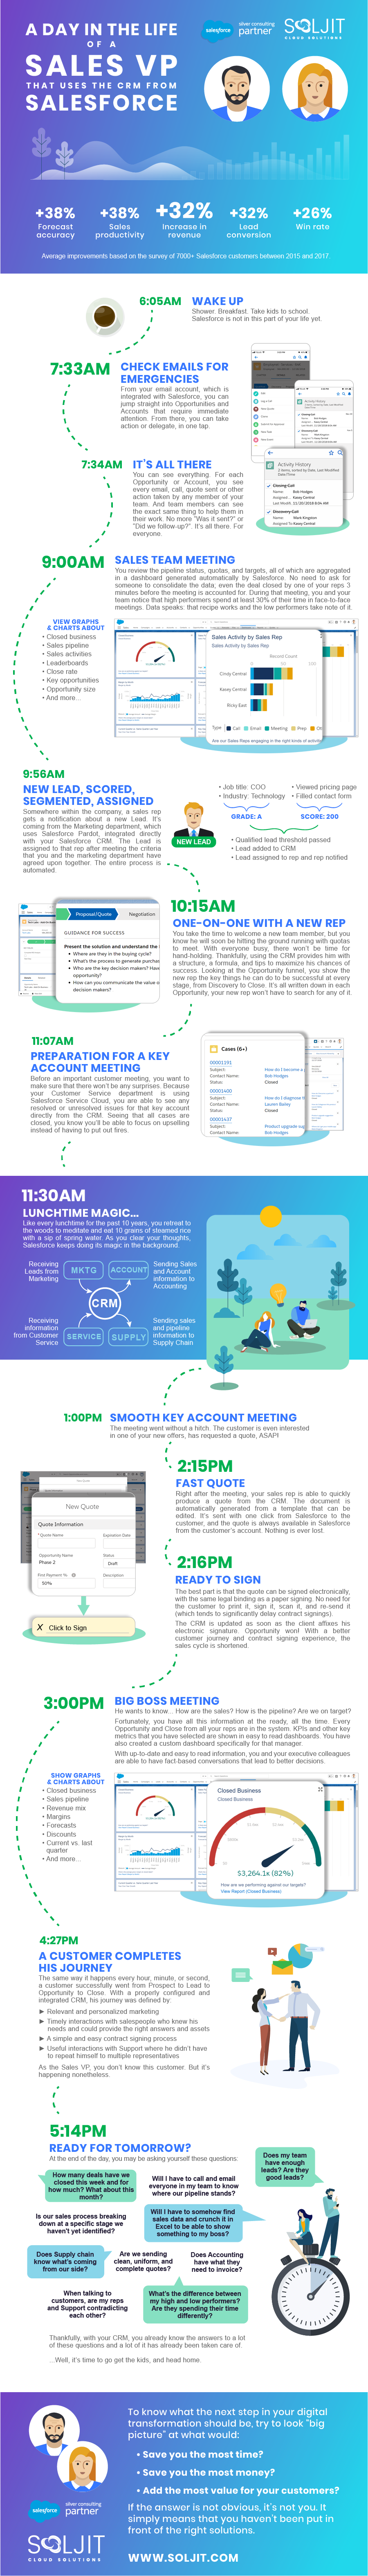 A day in the life of a Sales VP using the CRM from Salesforce